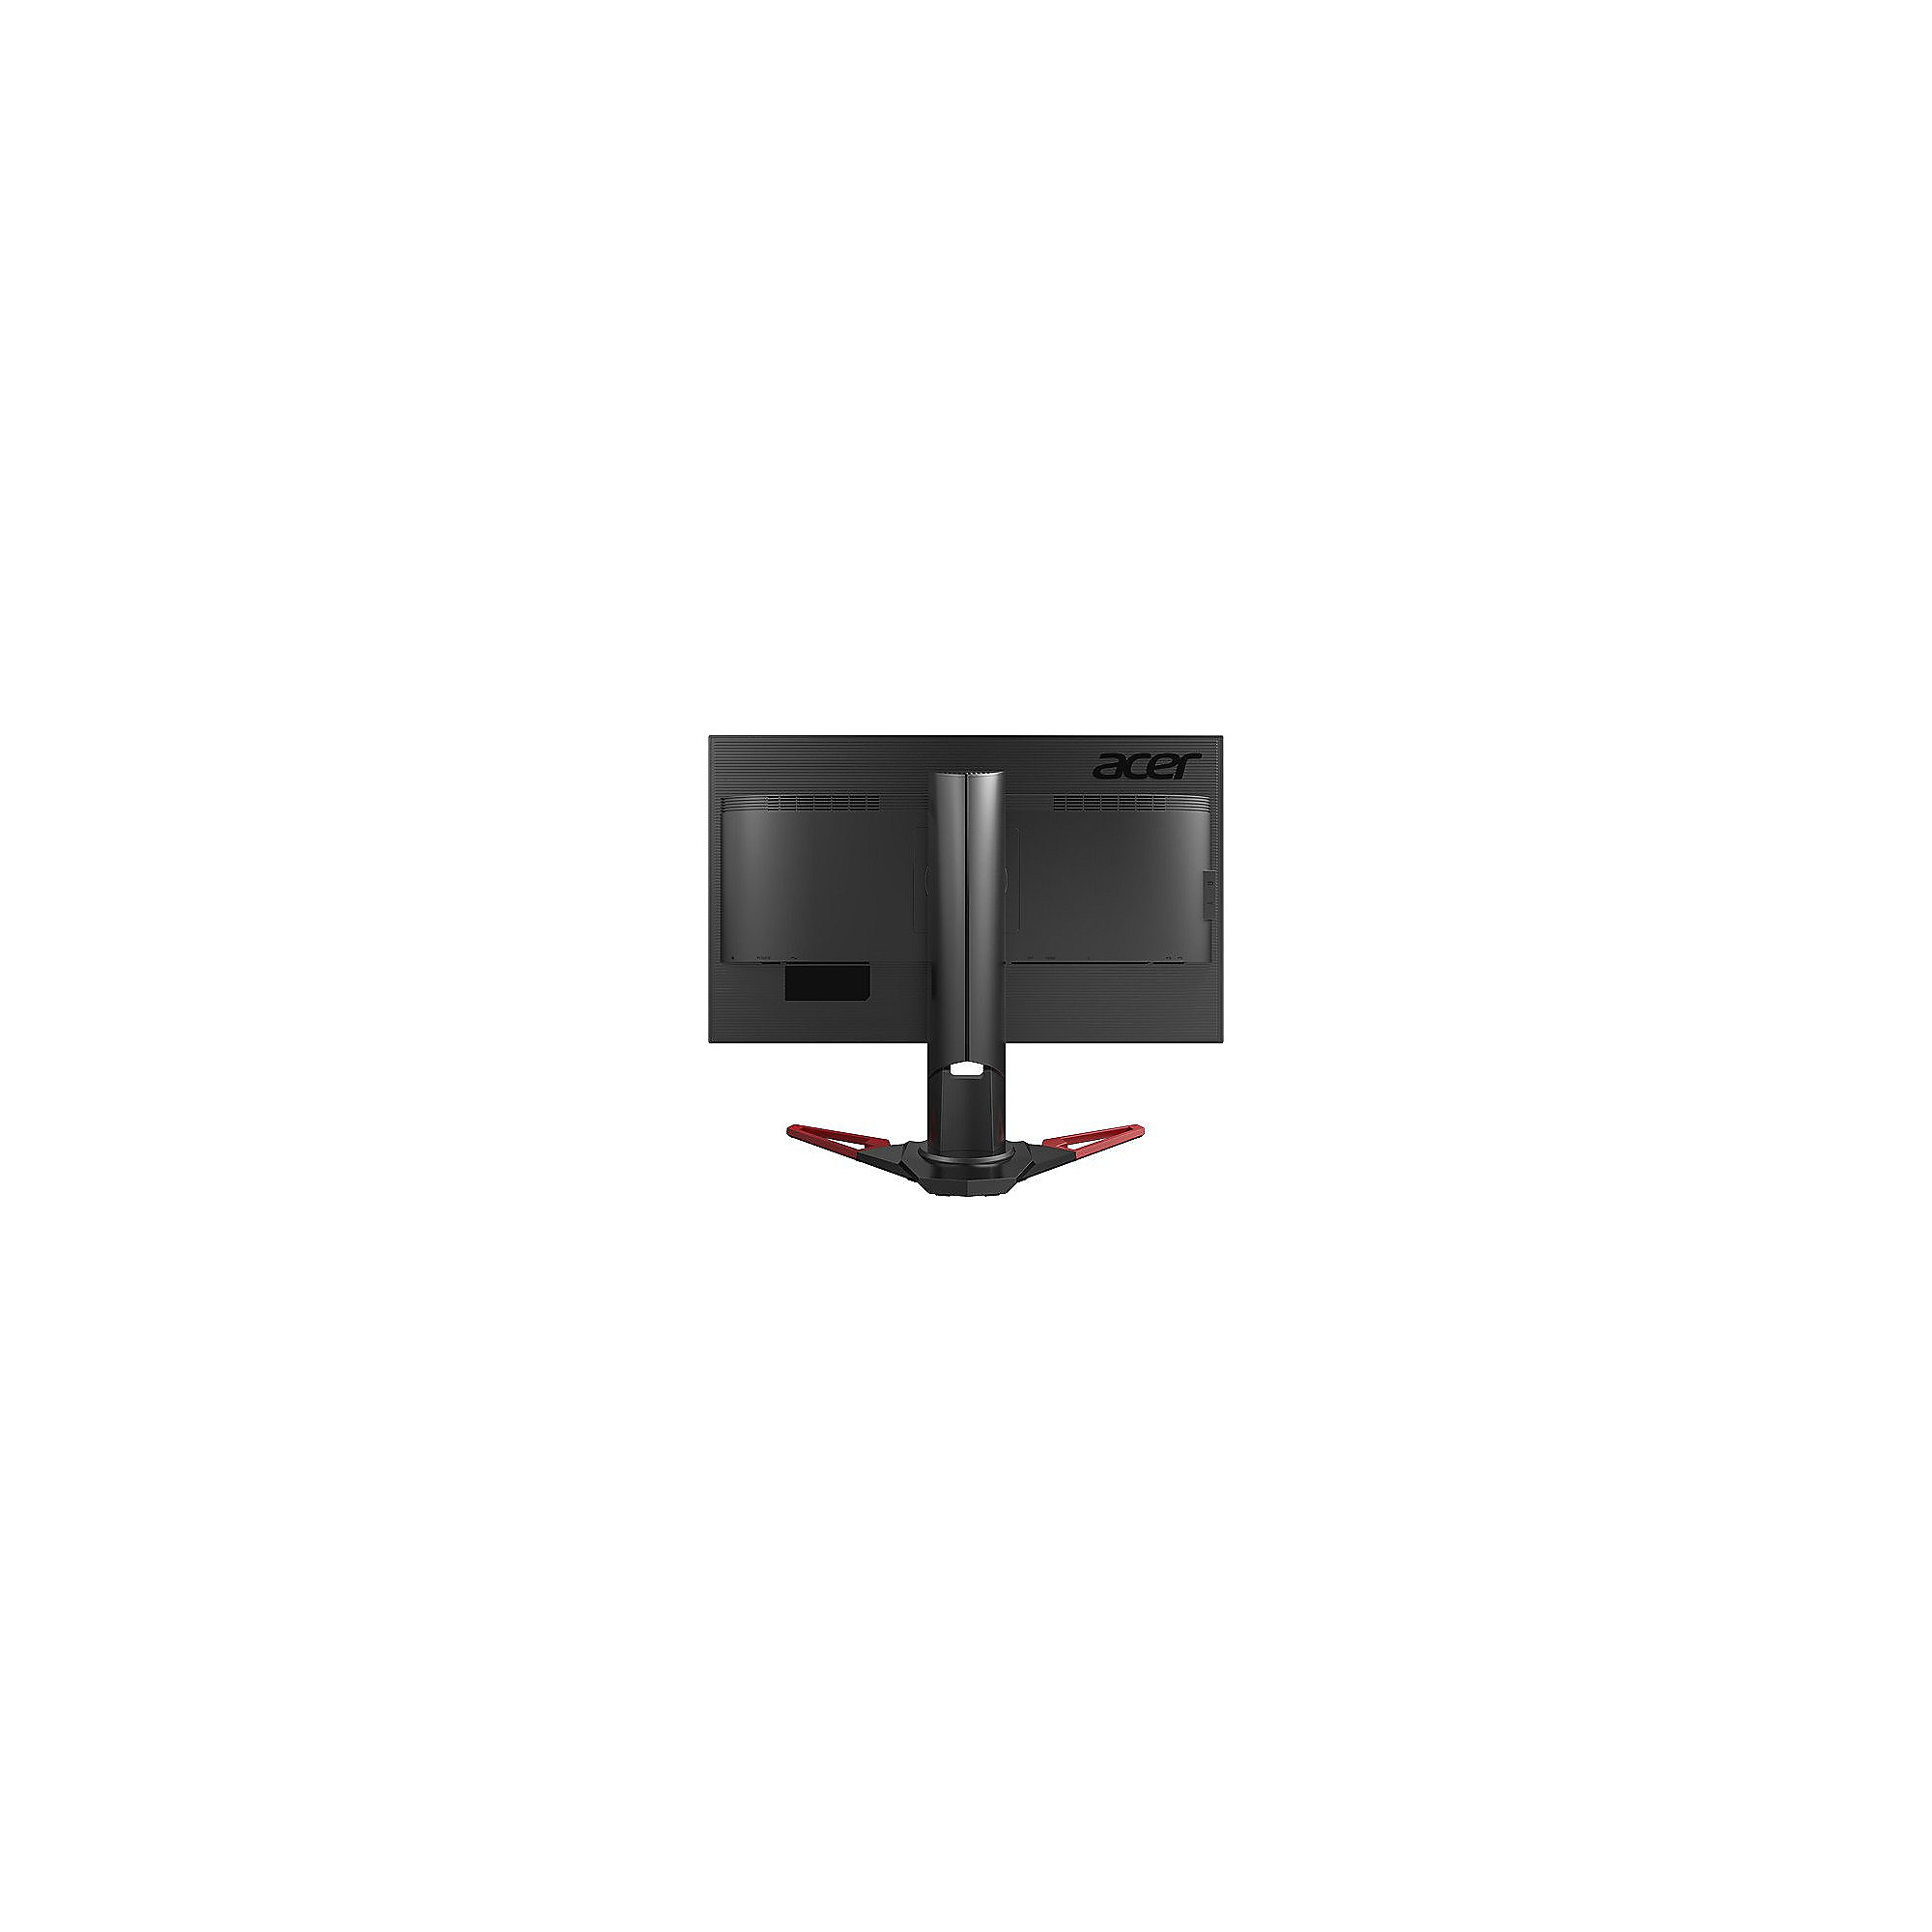 "ACER Predator XB271Hbmiprz 69 cm (27"") Full HD DP/HDMI/USB 4ms 144Hz"